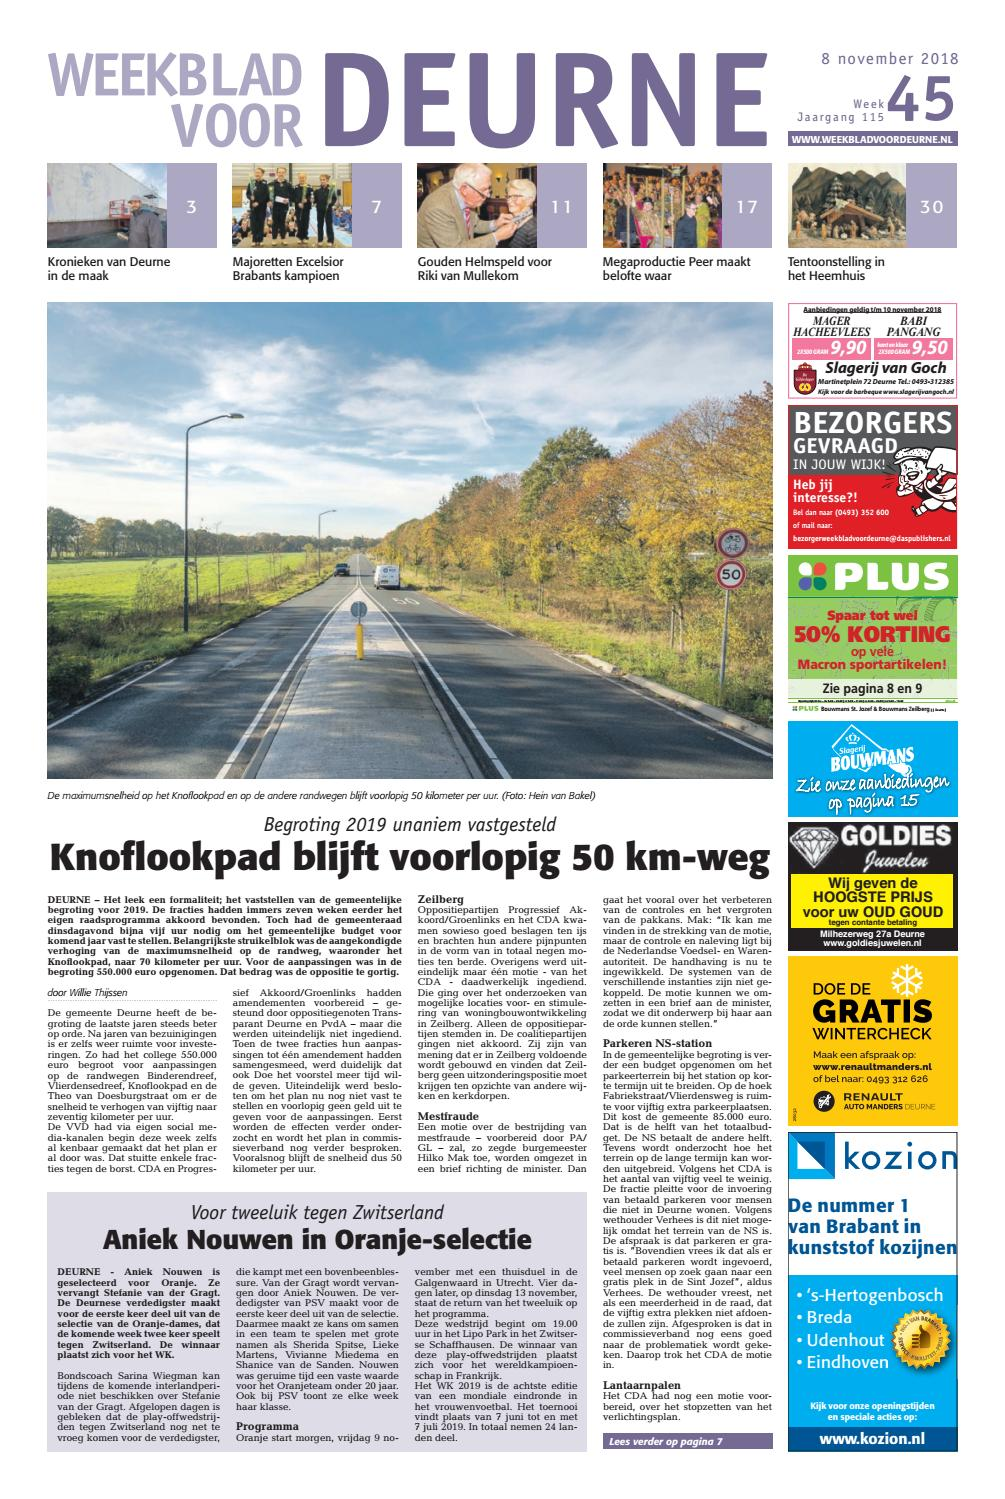 8f8a5e7d128e44 Weekblad voor Deurne 08-11-2018 by Das Publishers! - issuu